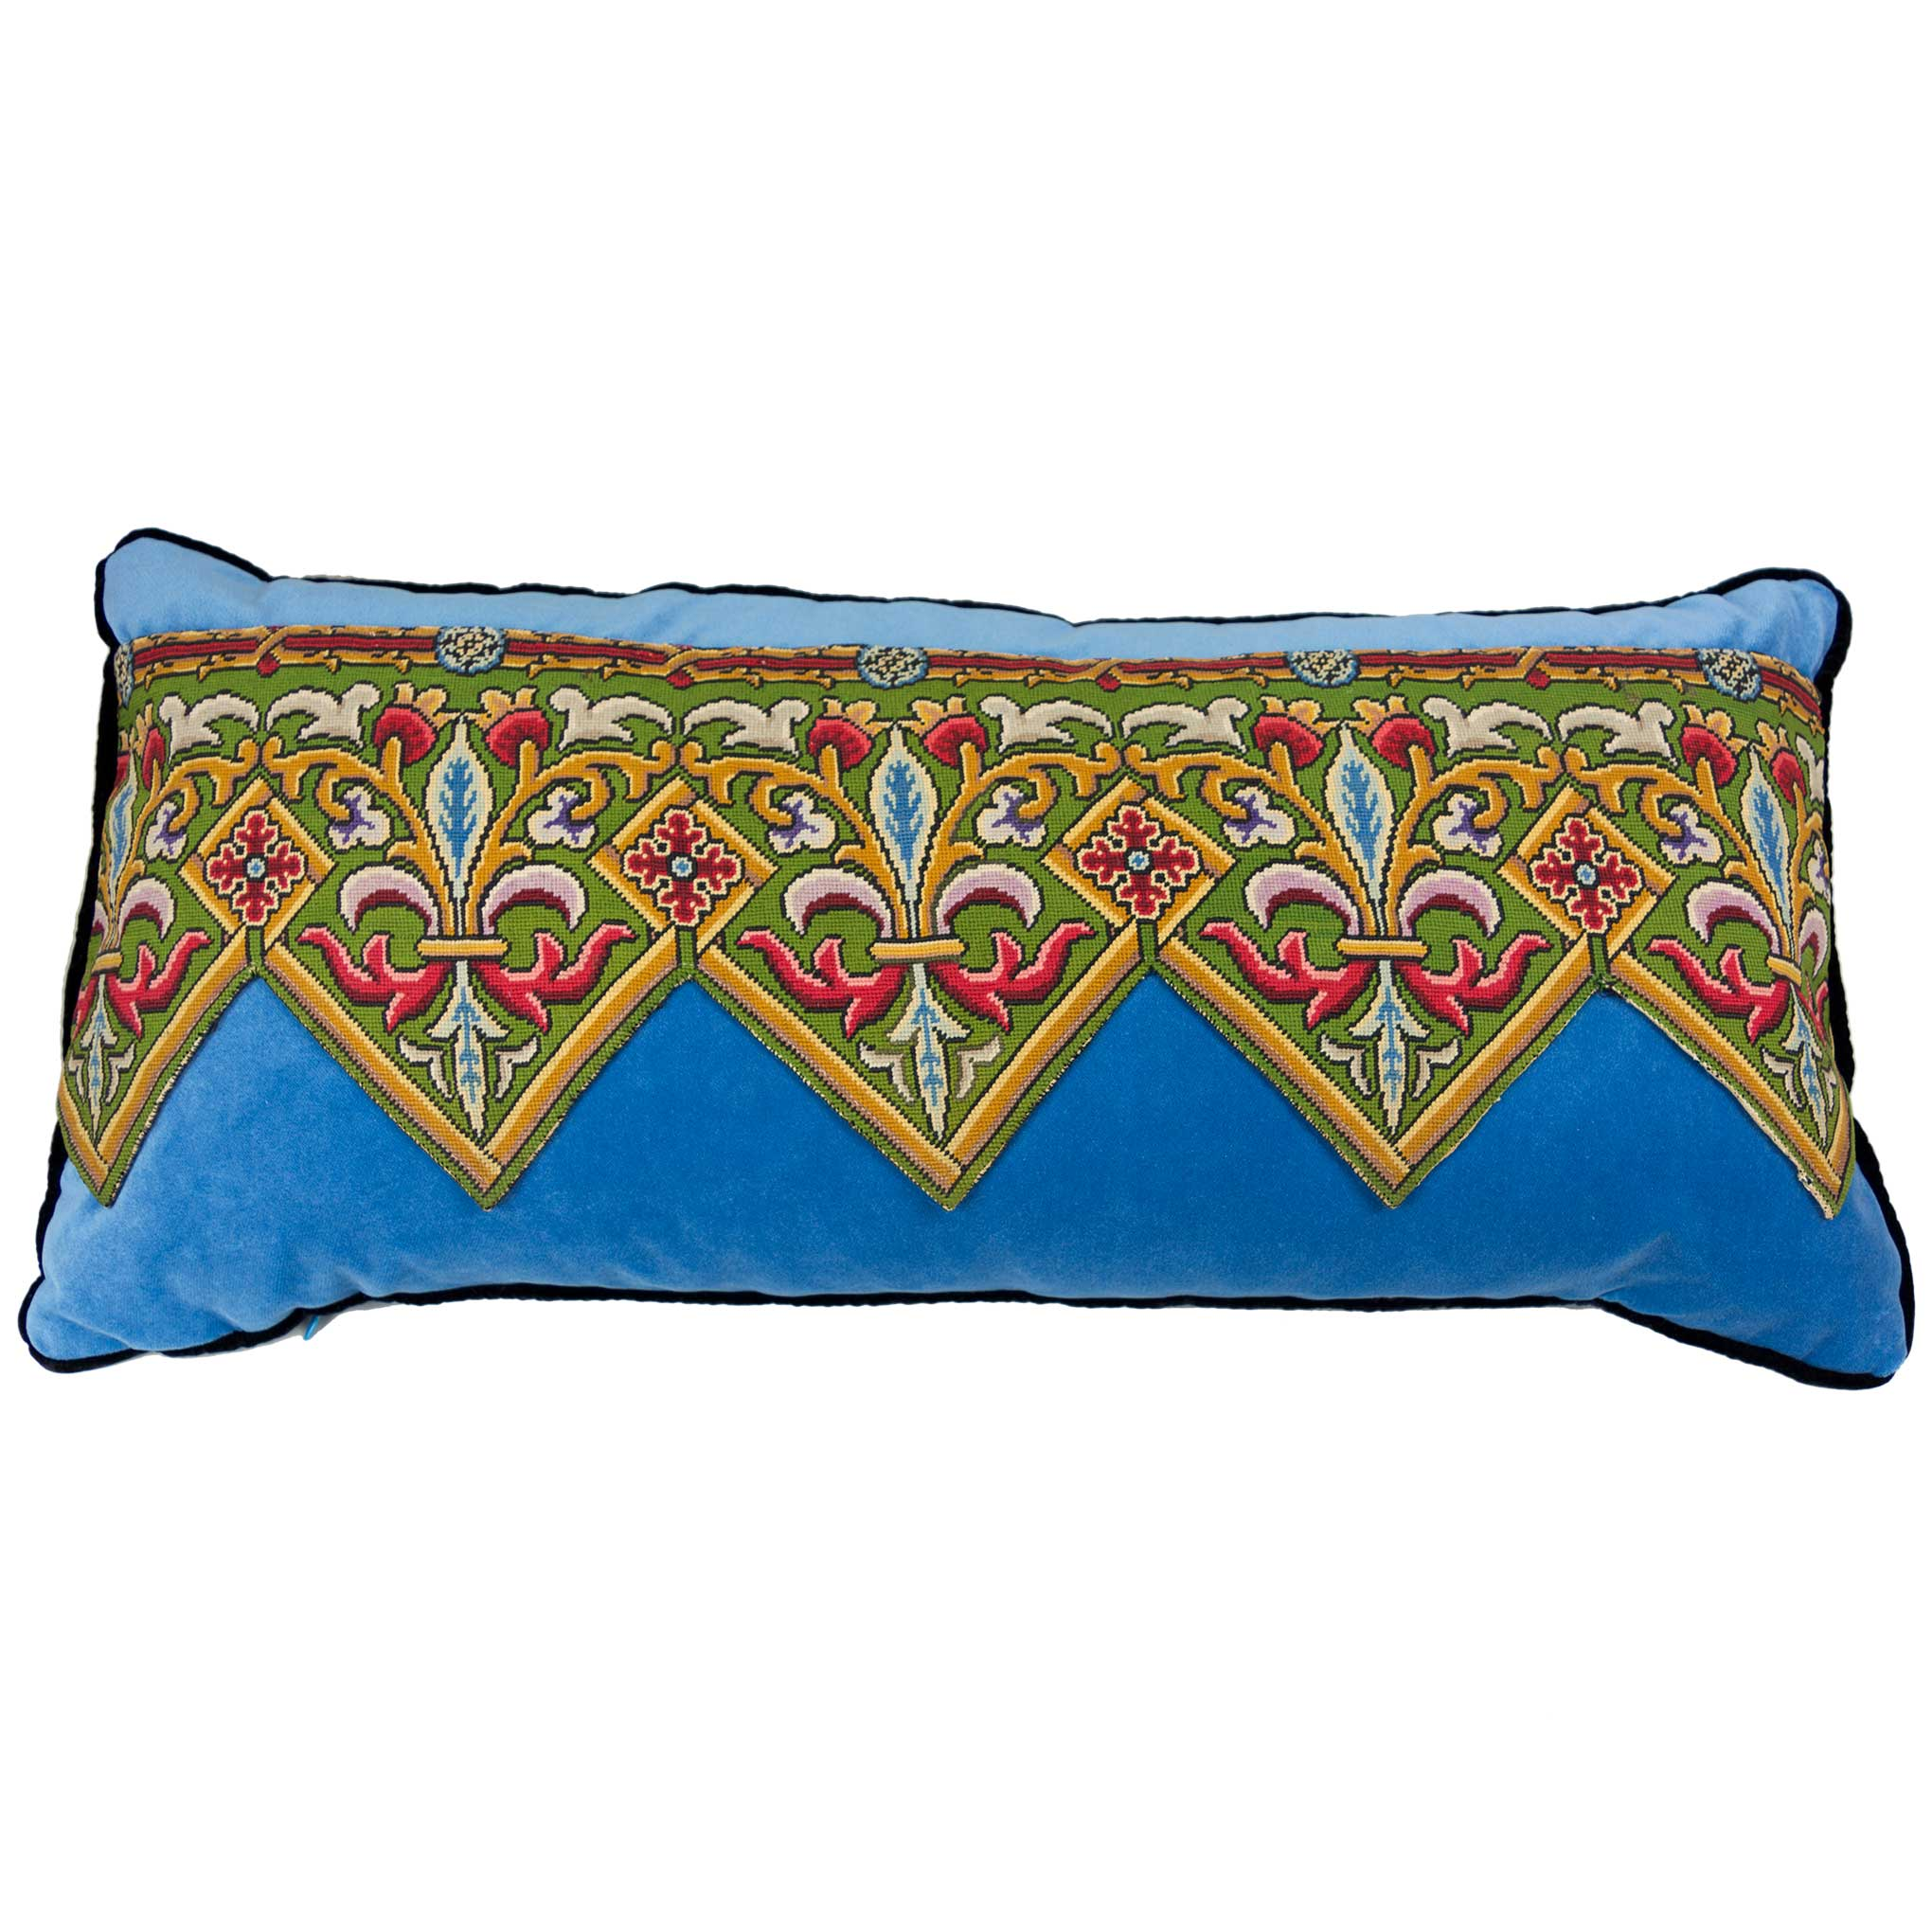 Tapestry Pillow European Finds 30x15 Blue Velvet